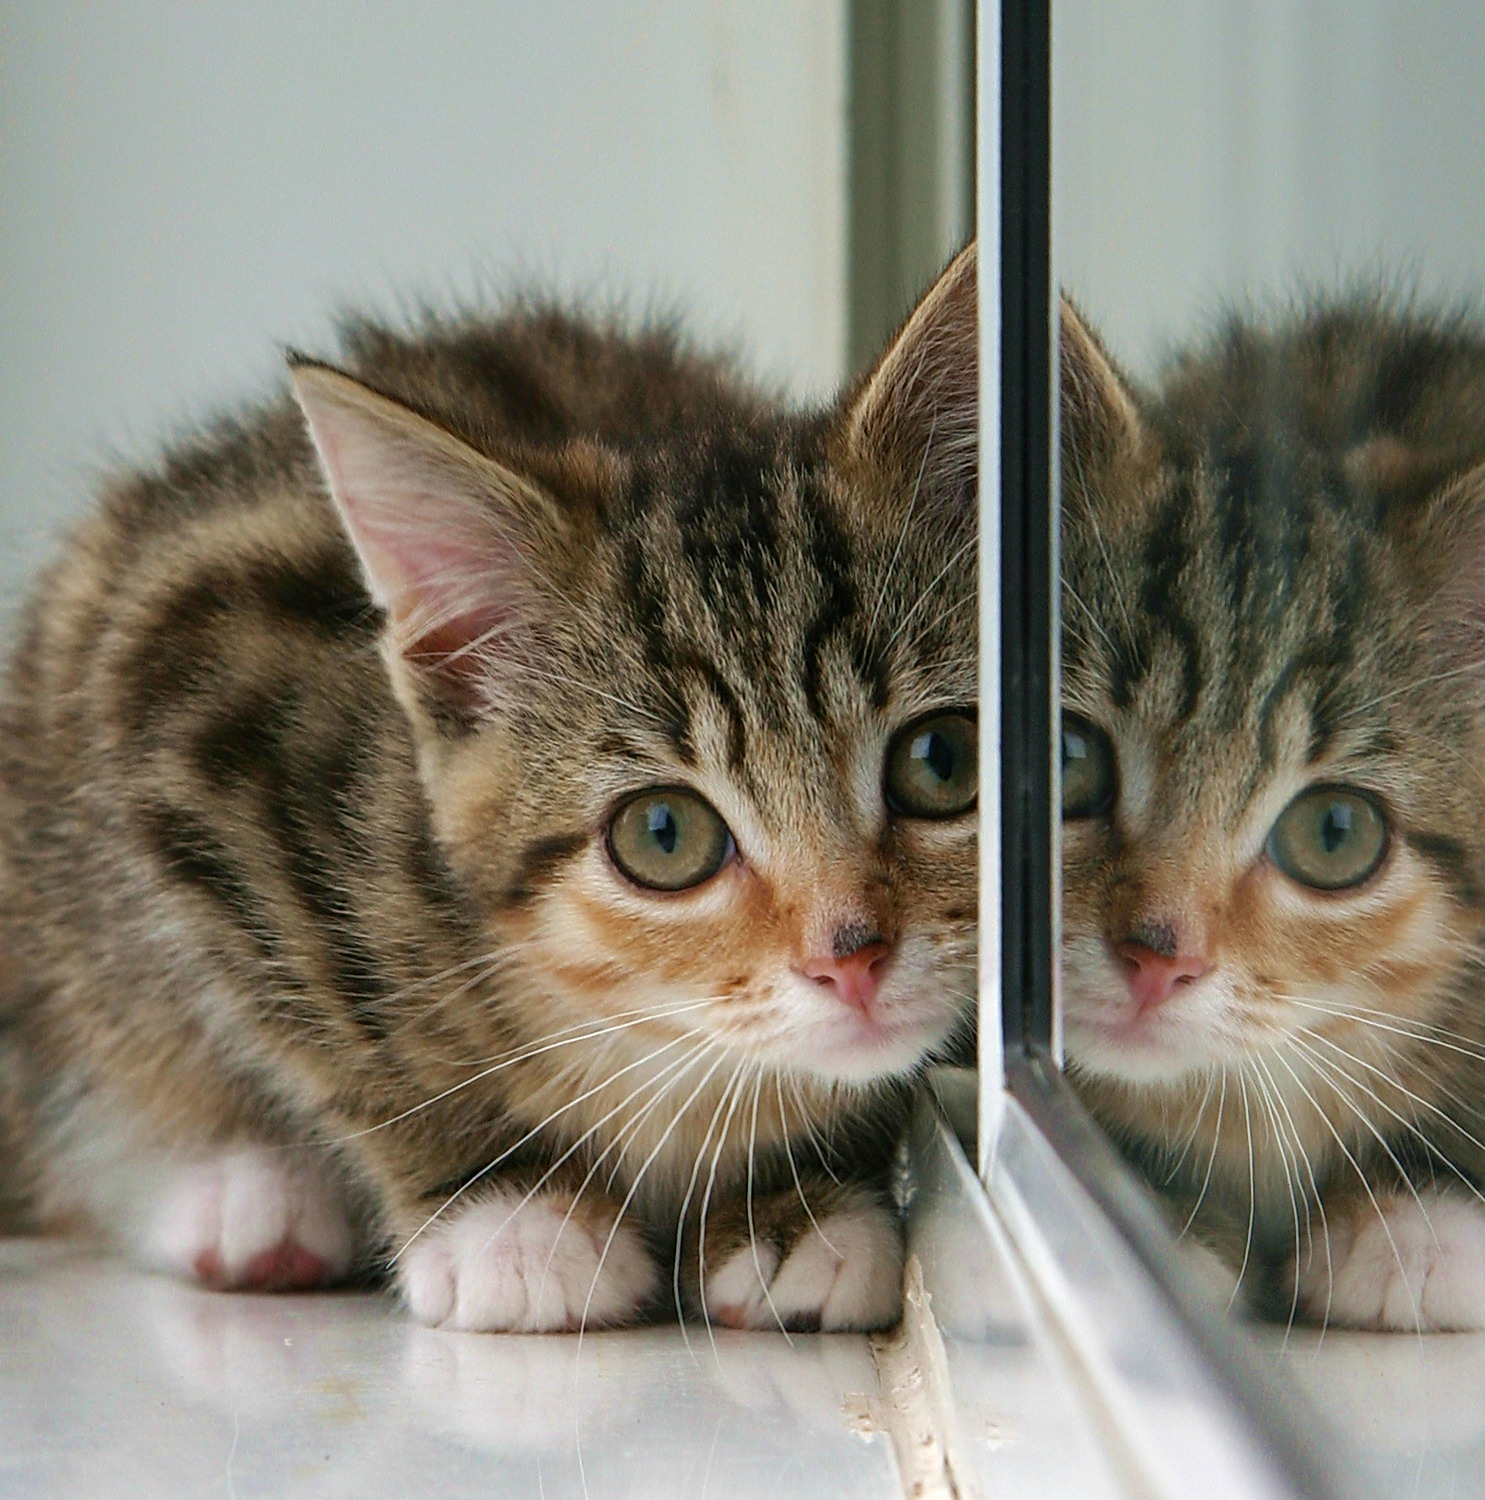 FileKitten and partial reflection in mirrorjpg  Wikimedia Commons